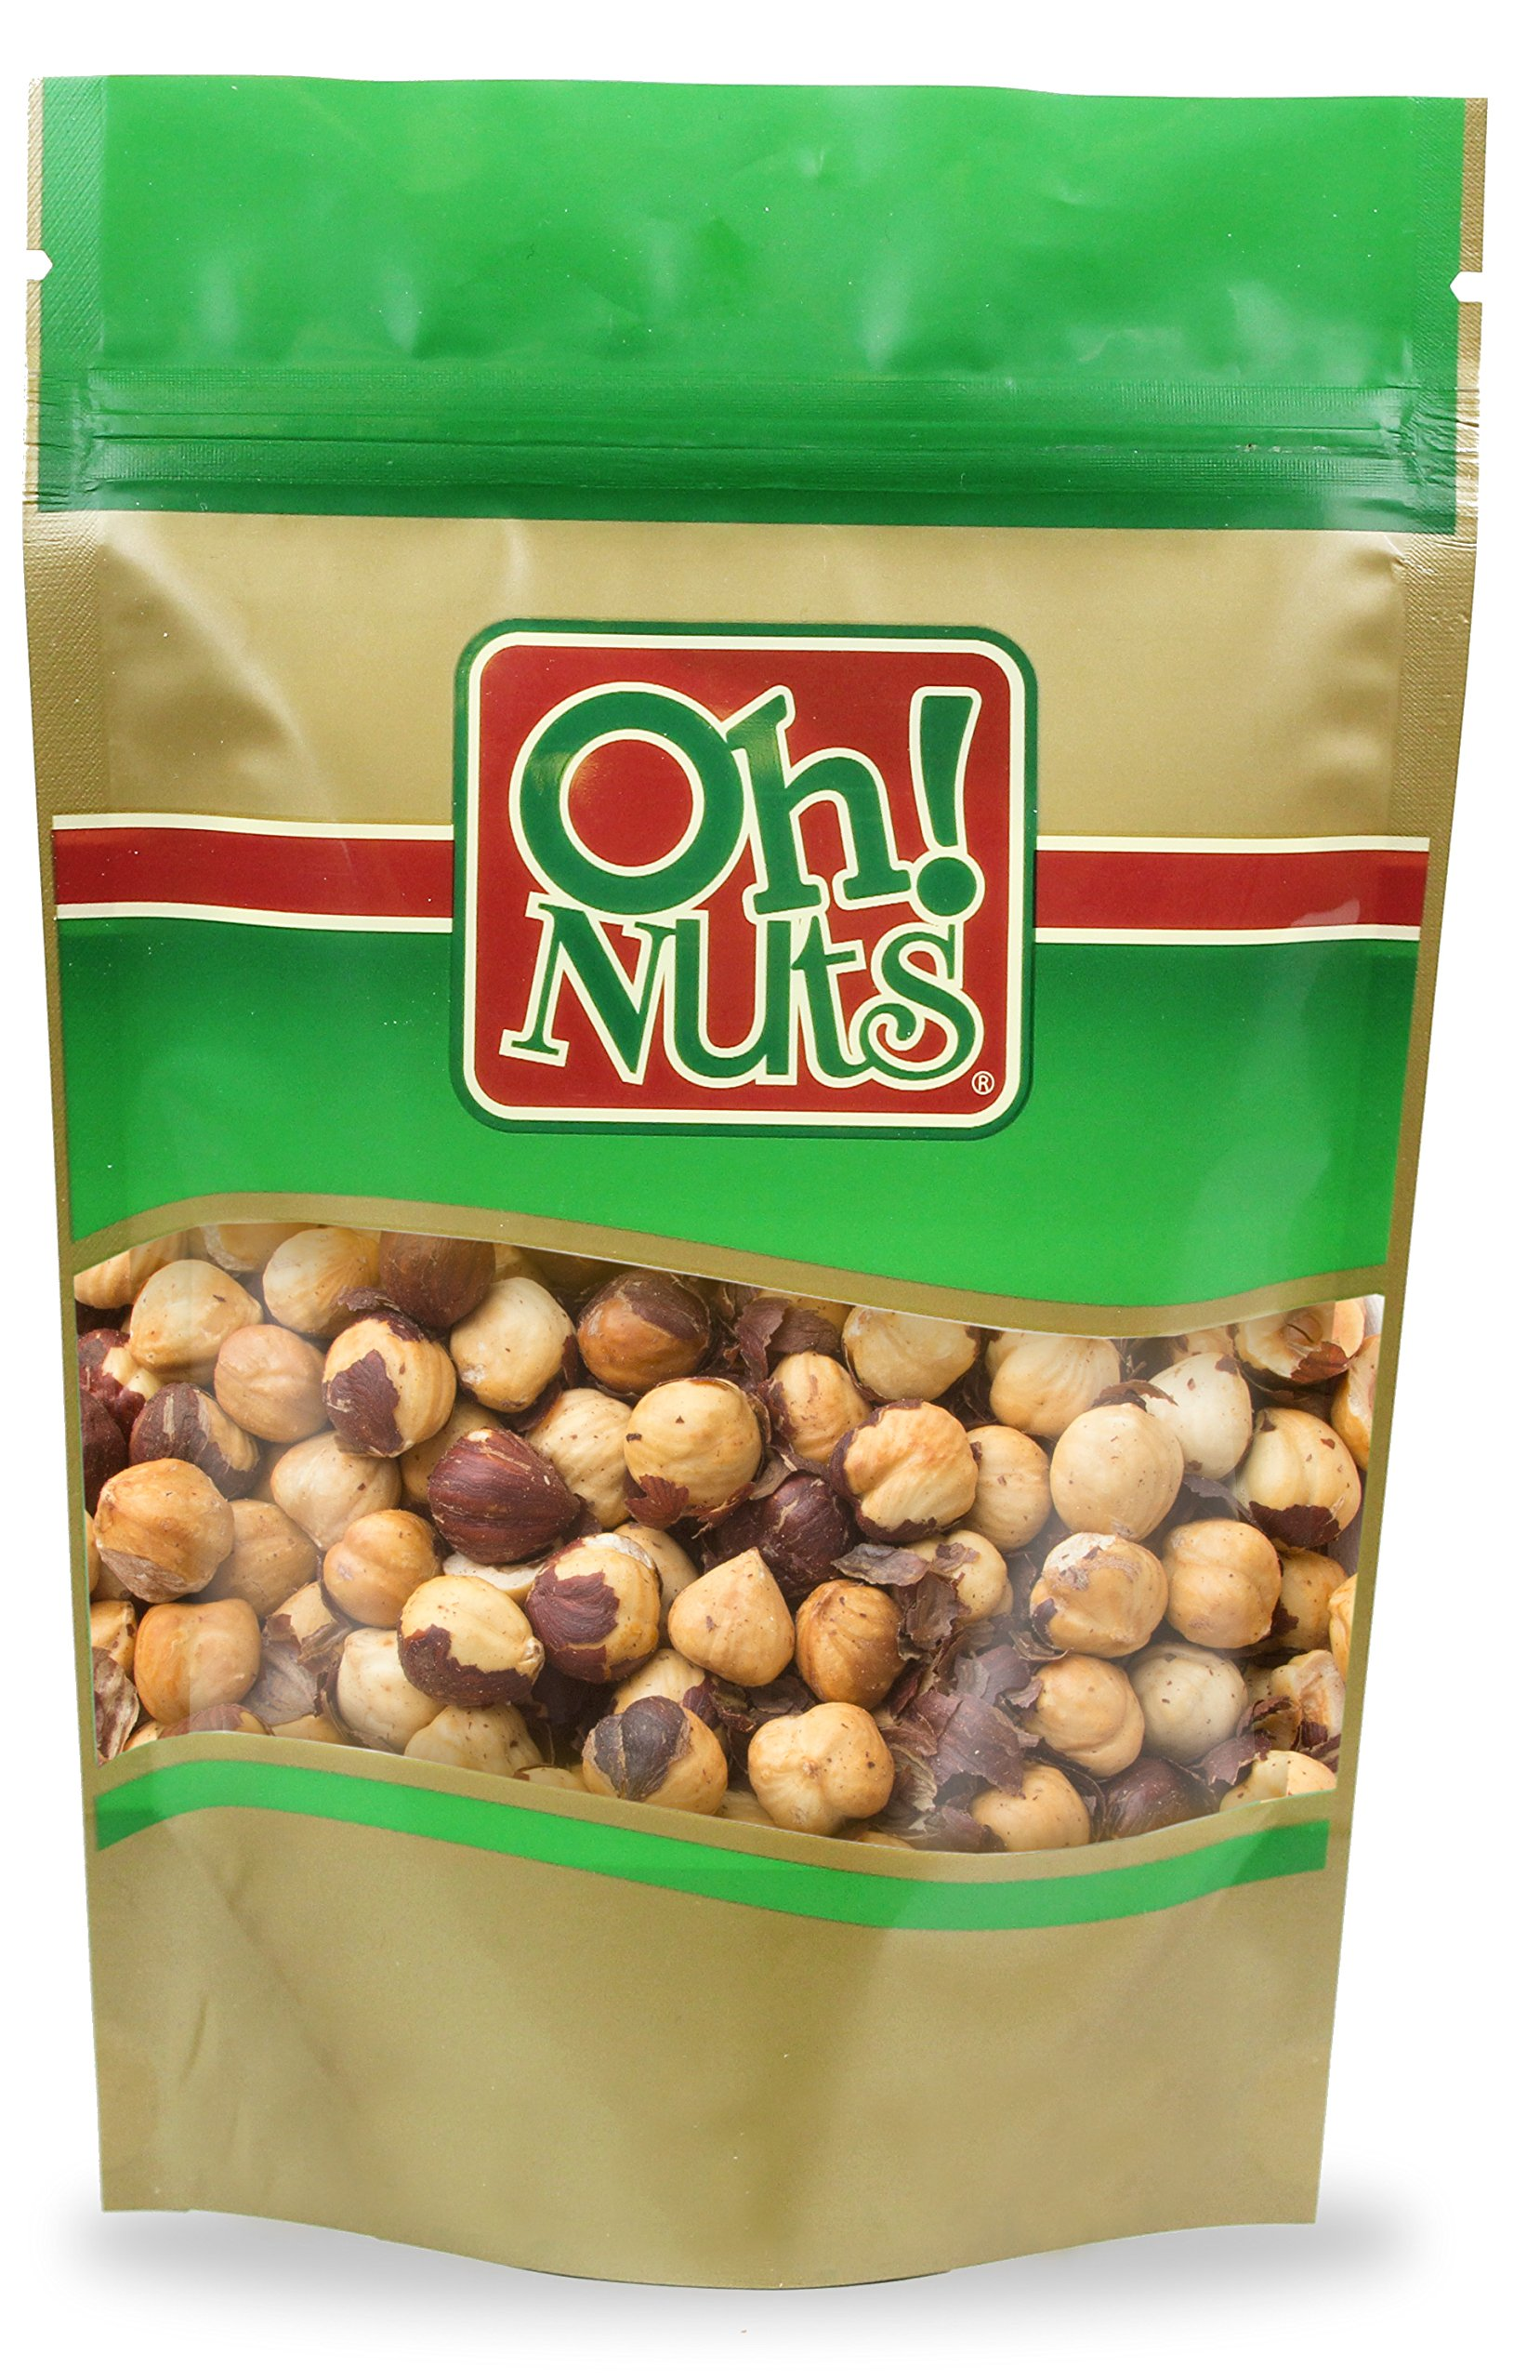 Hazelnuts Roasted Unsalted Healthy Nuts, Hazelnuts Filberts Dry Roasted with NO ADDED OILS or SALT - Oh! Nuts (5 LB Hazelnuts Roasted Unsalted)